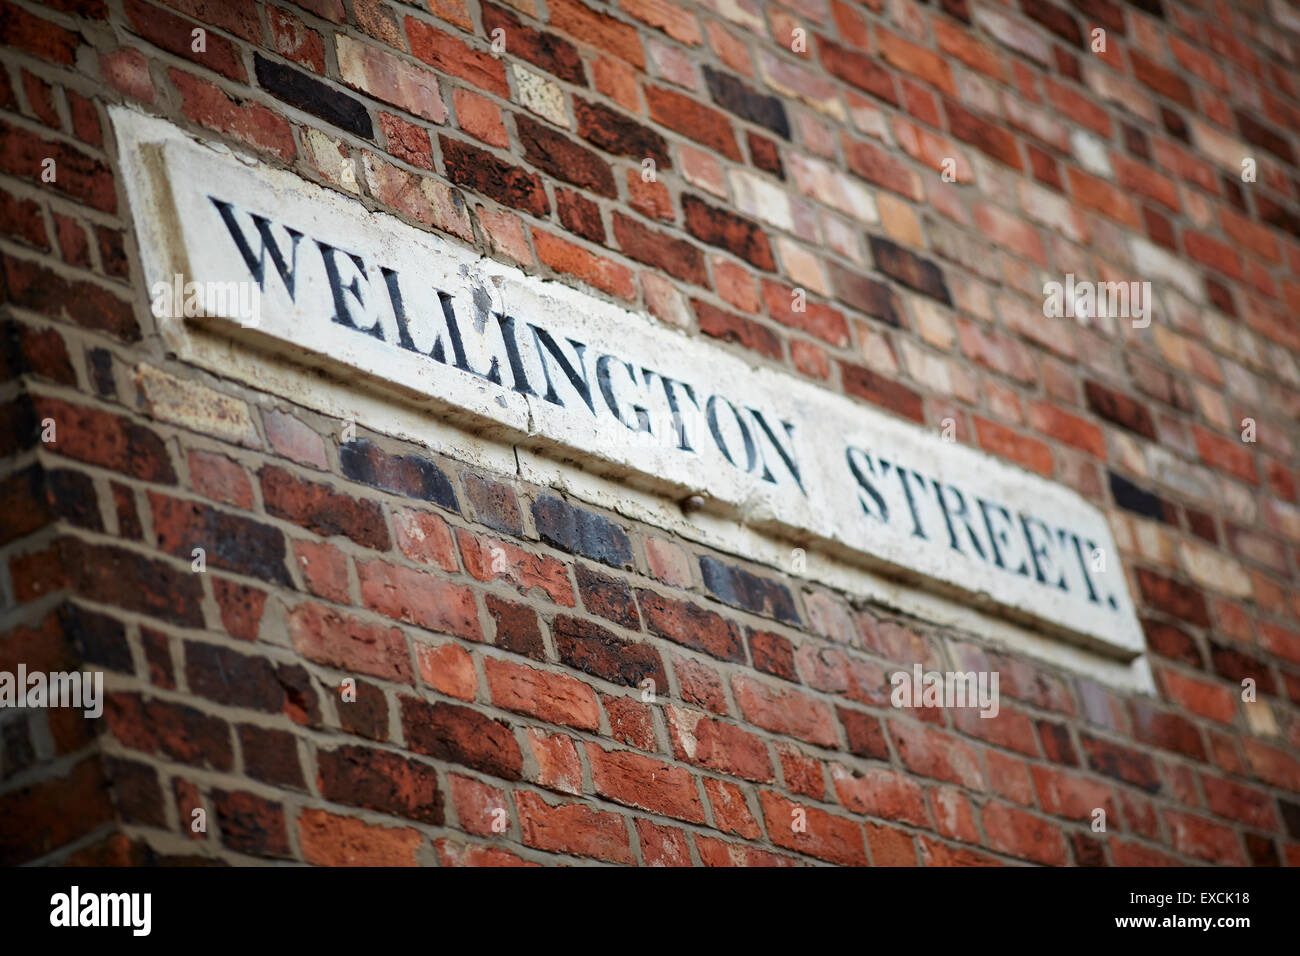 A stone street sign for Wellington Street, Runcorn - Stock Image